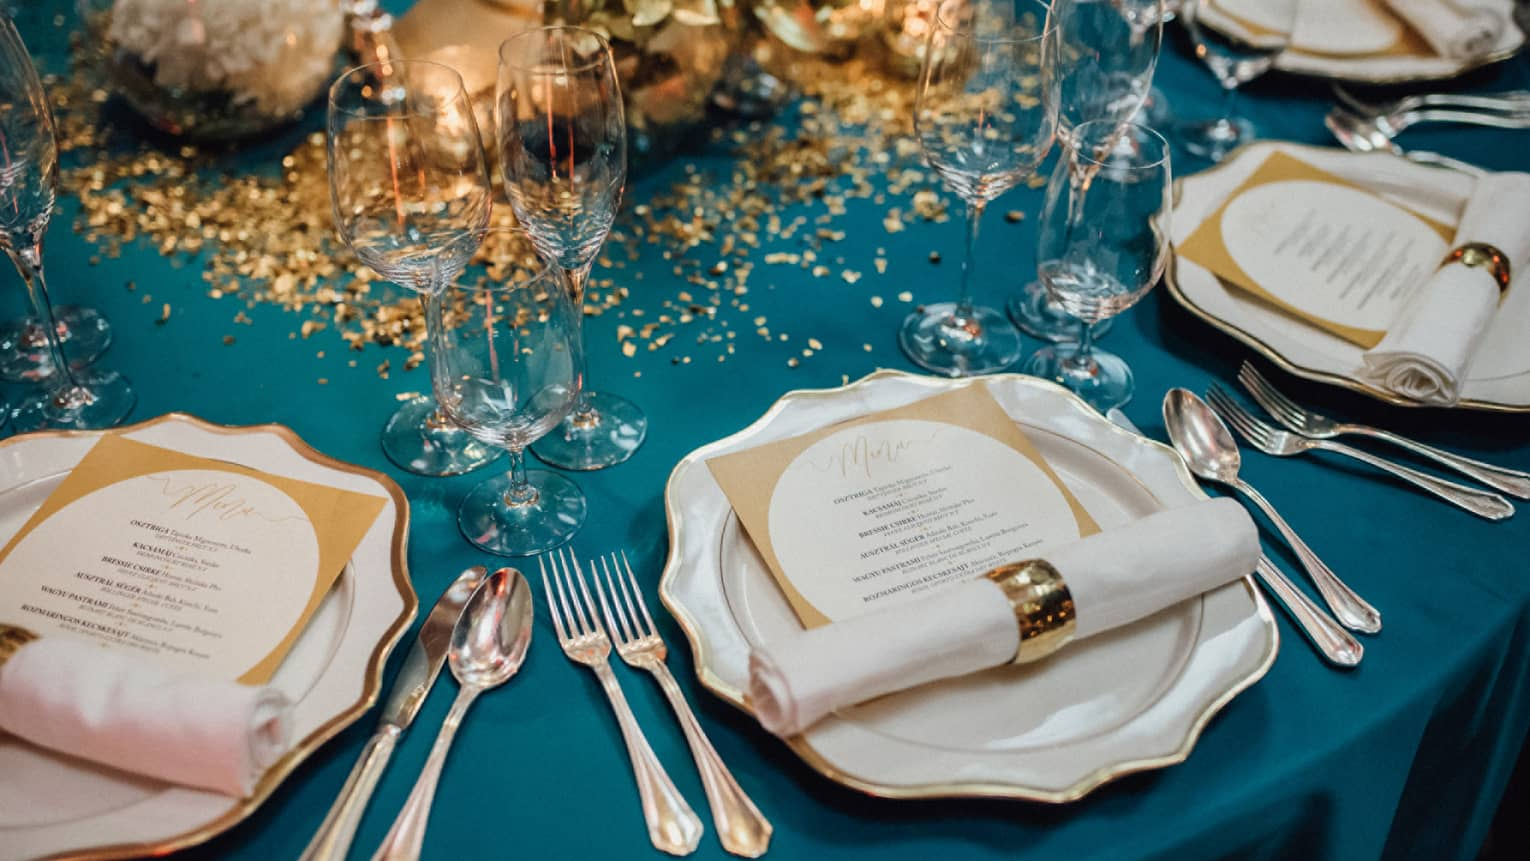 Elegant wedding banquet dining table, place settings with menus and gold accents